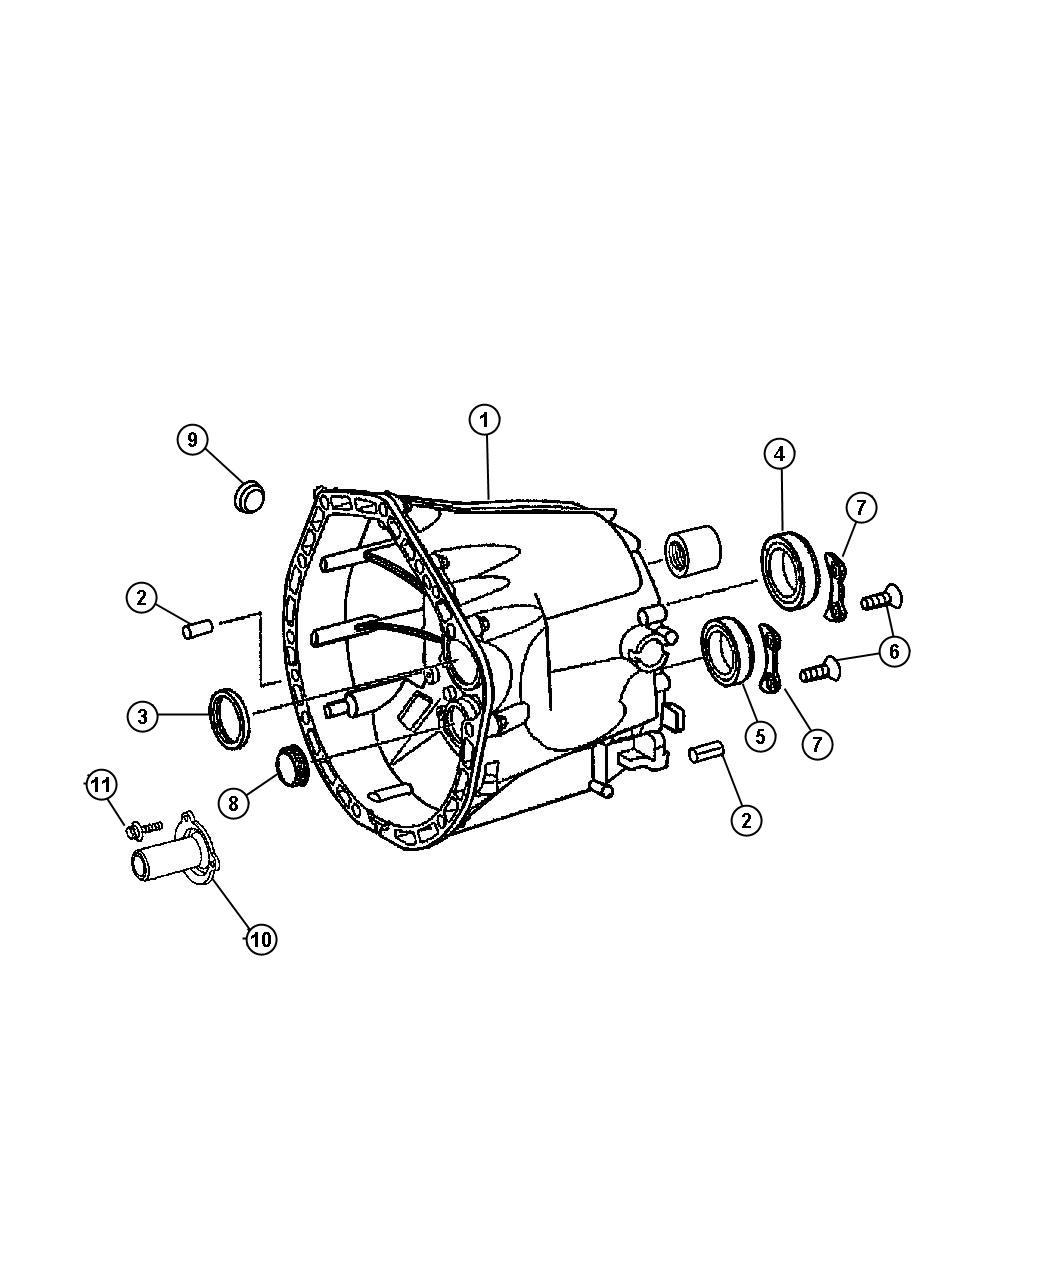 Jeep Wrangler Plug. Expansion. Case, related, front